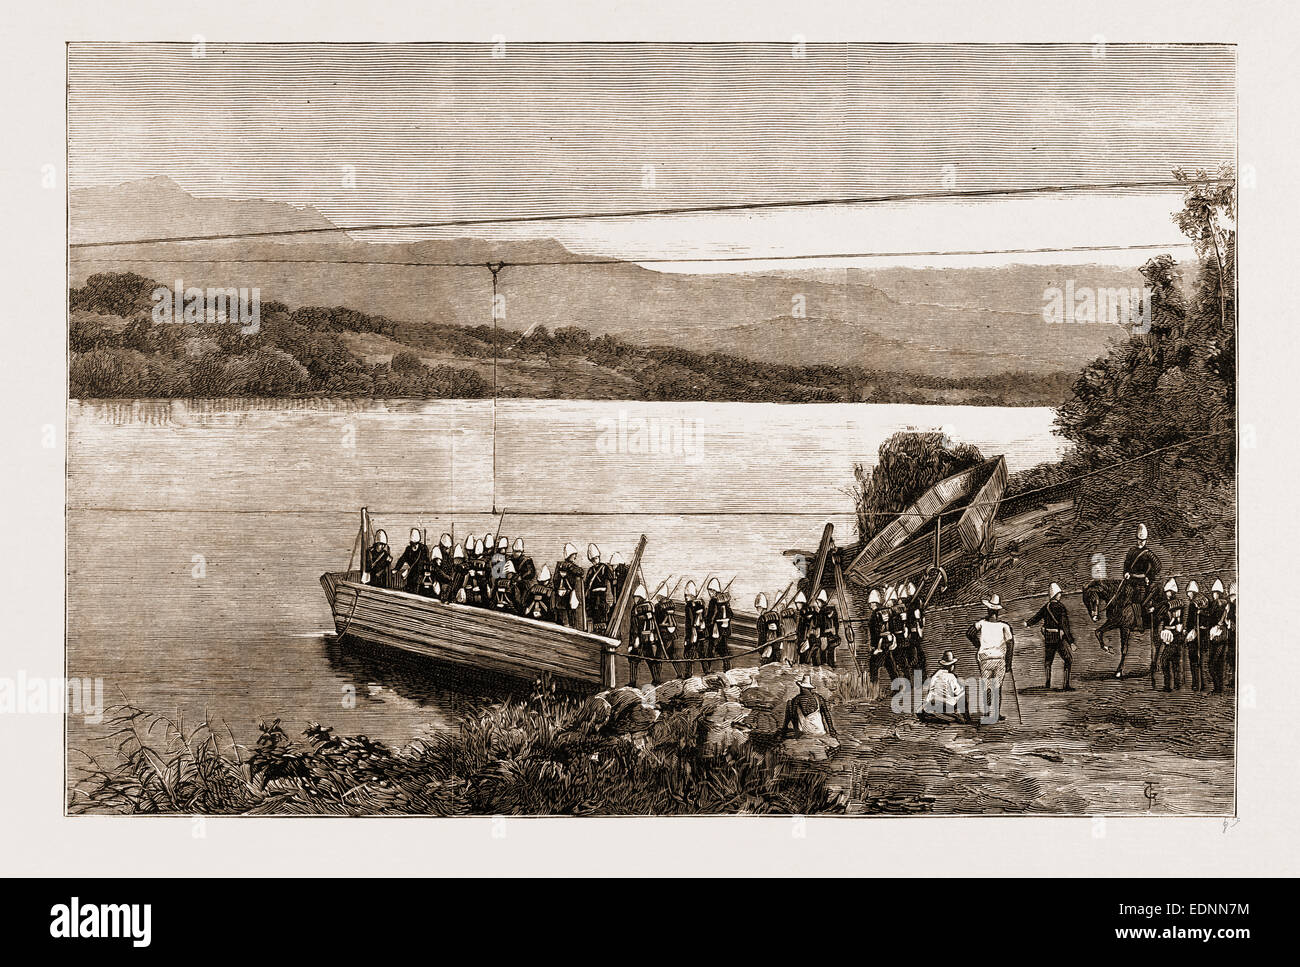 THE REBELLION IN THE TRANSVAAL, SOUTH AFRICA, 1881: TUGELA FERRY ON THE ROAD TO THE BIGGARSBERGStock Photo